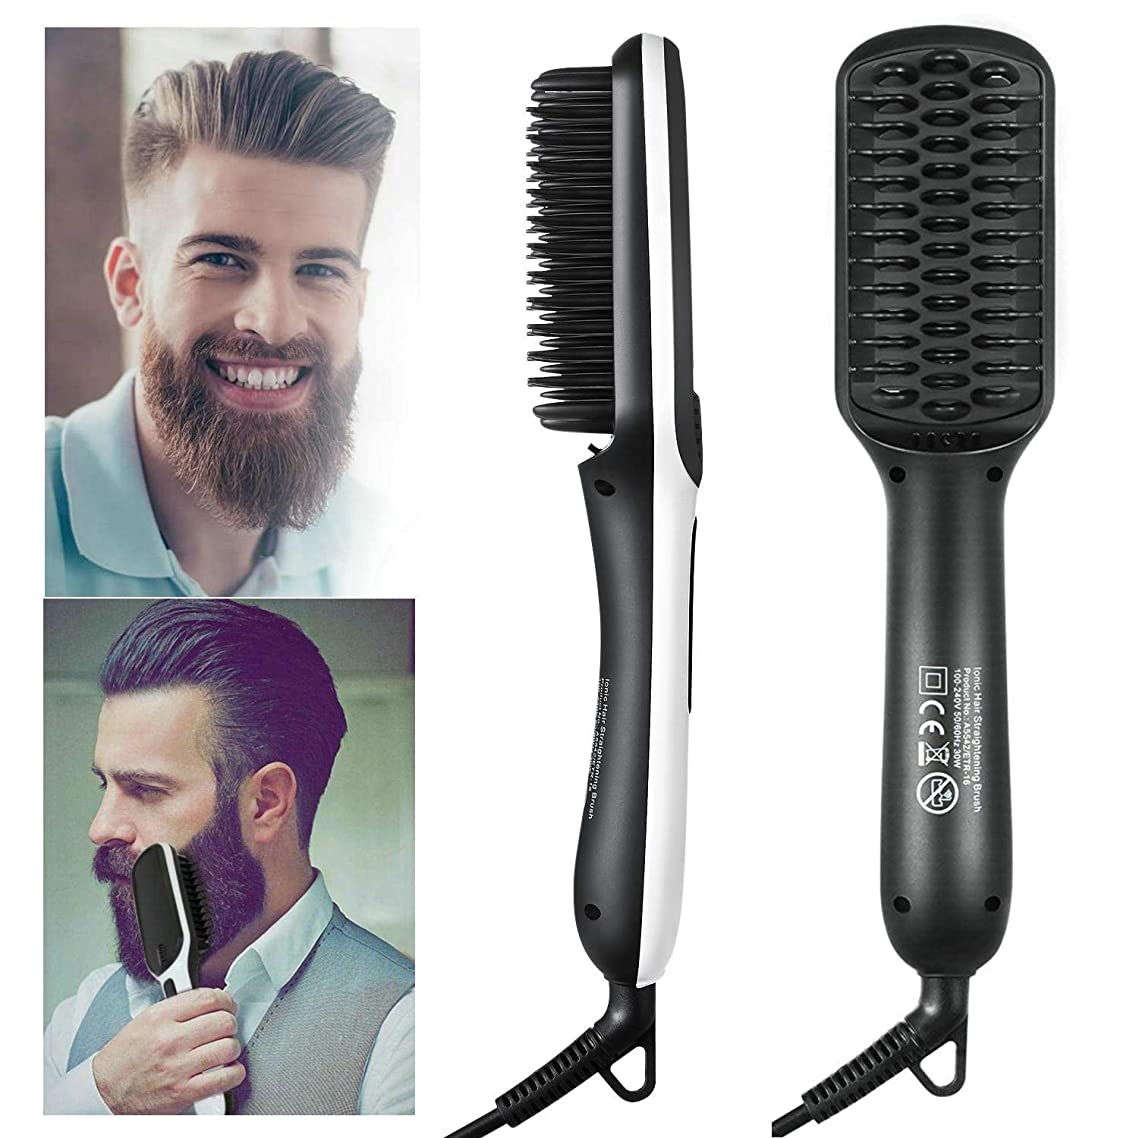 Beard Straightener Comb,Upgrade Version 2019 New Design Hair Straightening Brush for Men and Women Quick Beard and Hair Styler Electric Curling Hair Comb Ionic Dual Voltage (100V-240V) for Home Travel